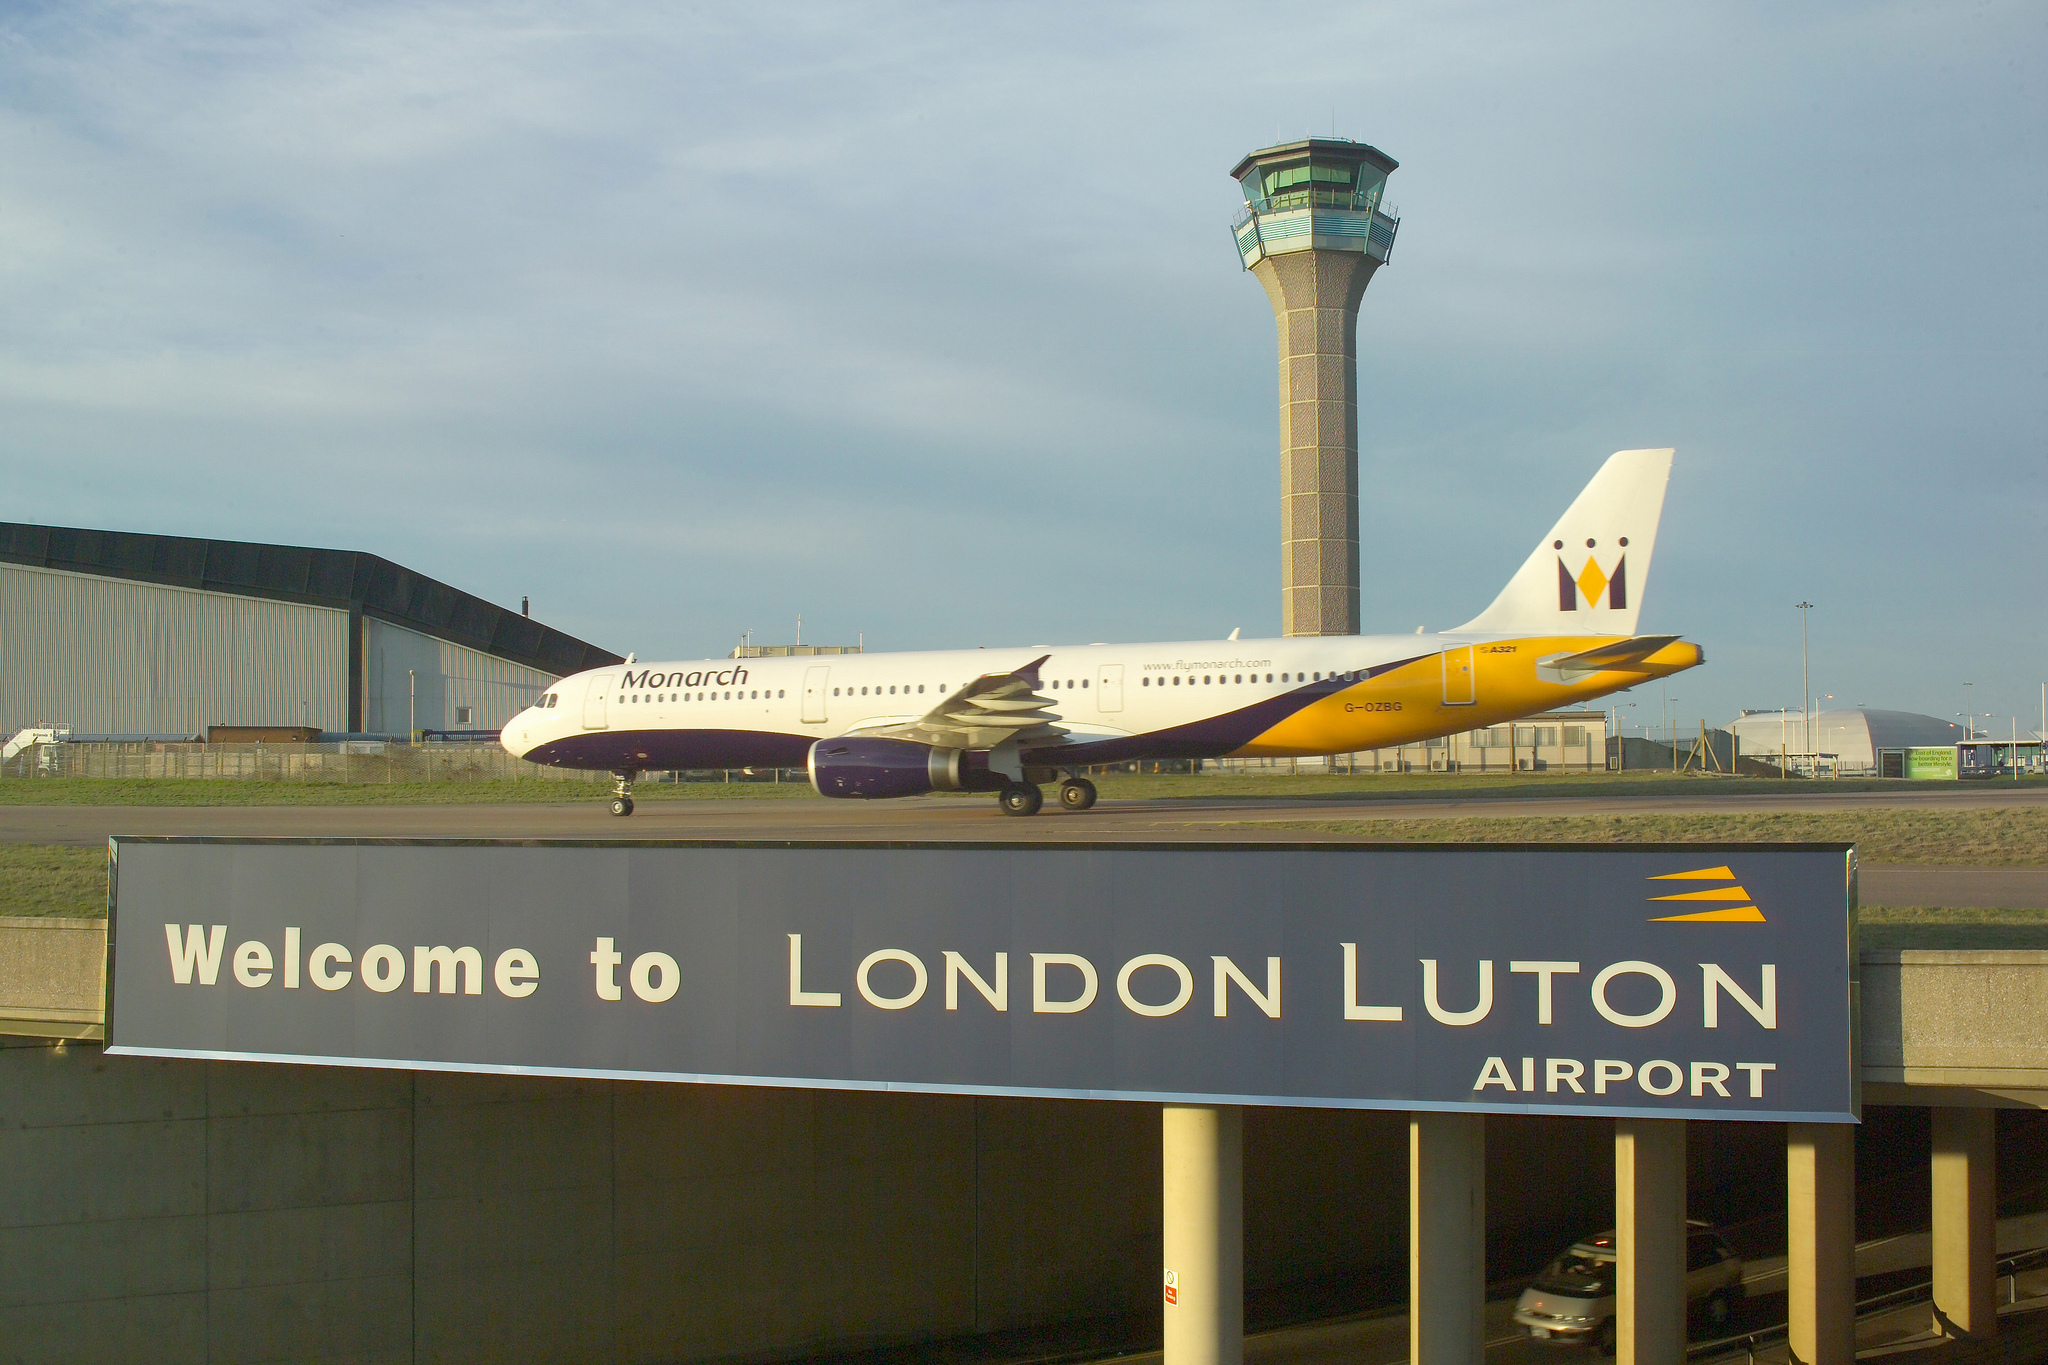 NEW TRAFFIC HIGH FOR LONDON LUTON AIRPORT